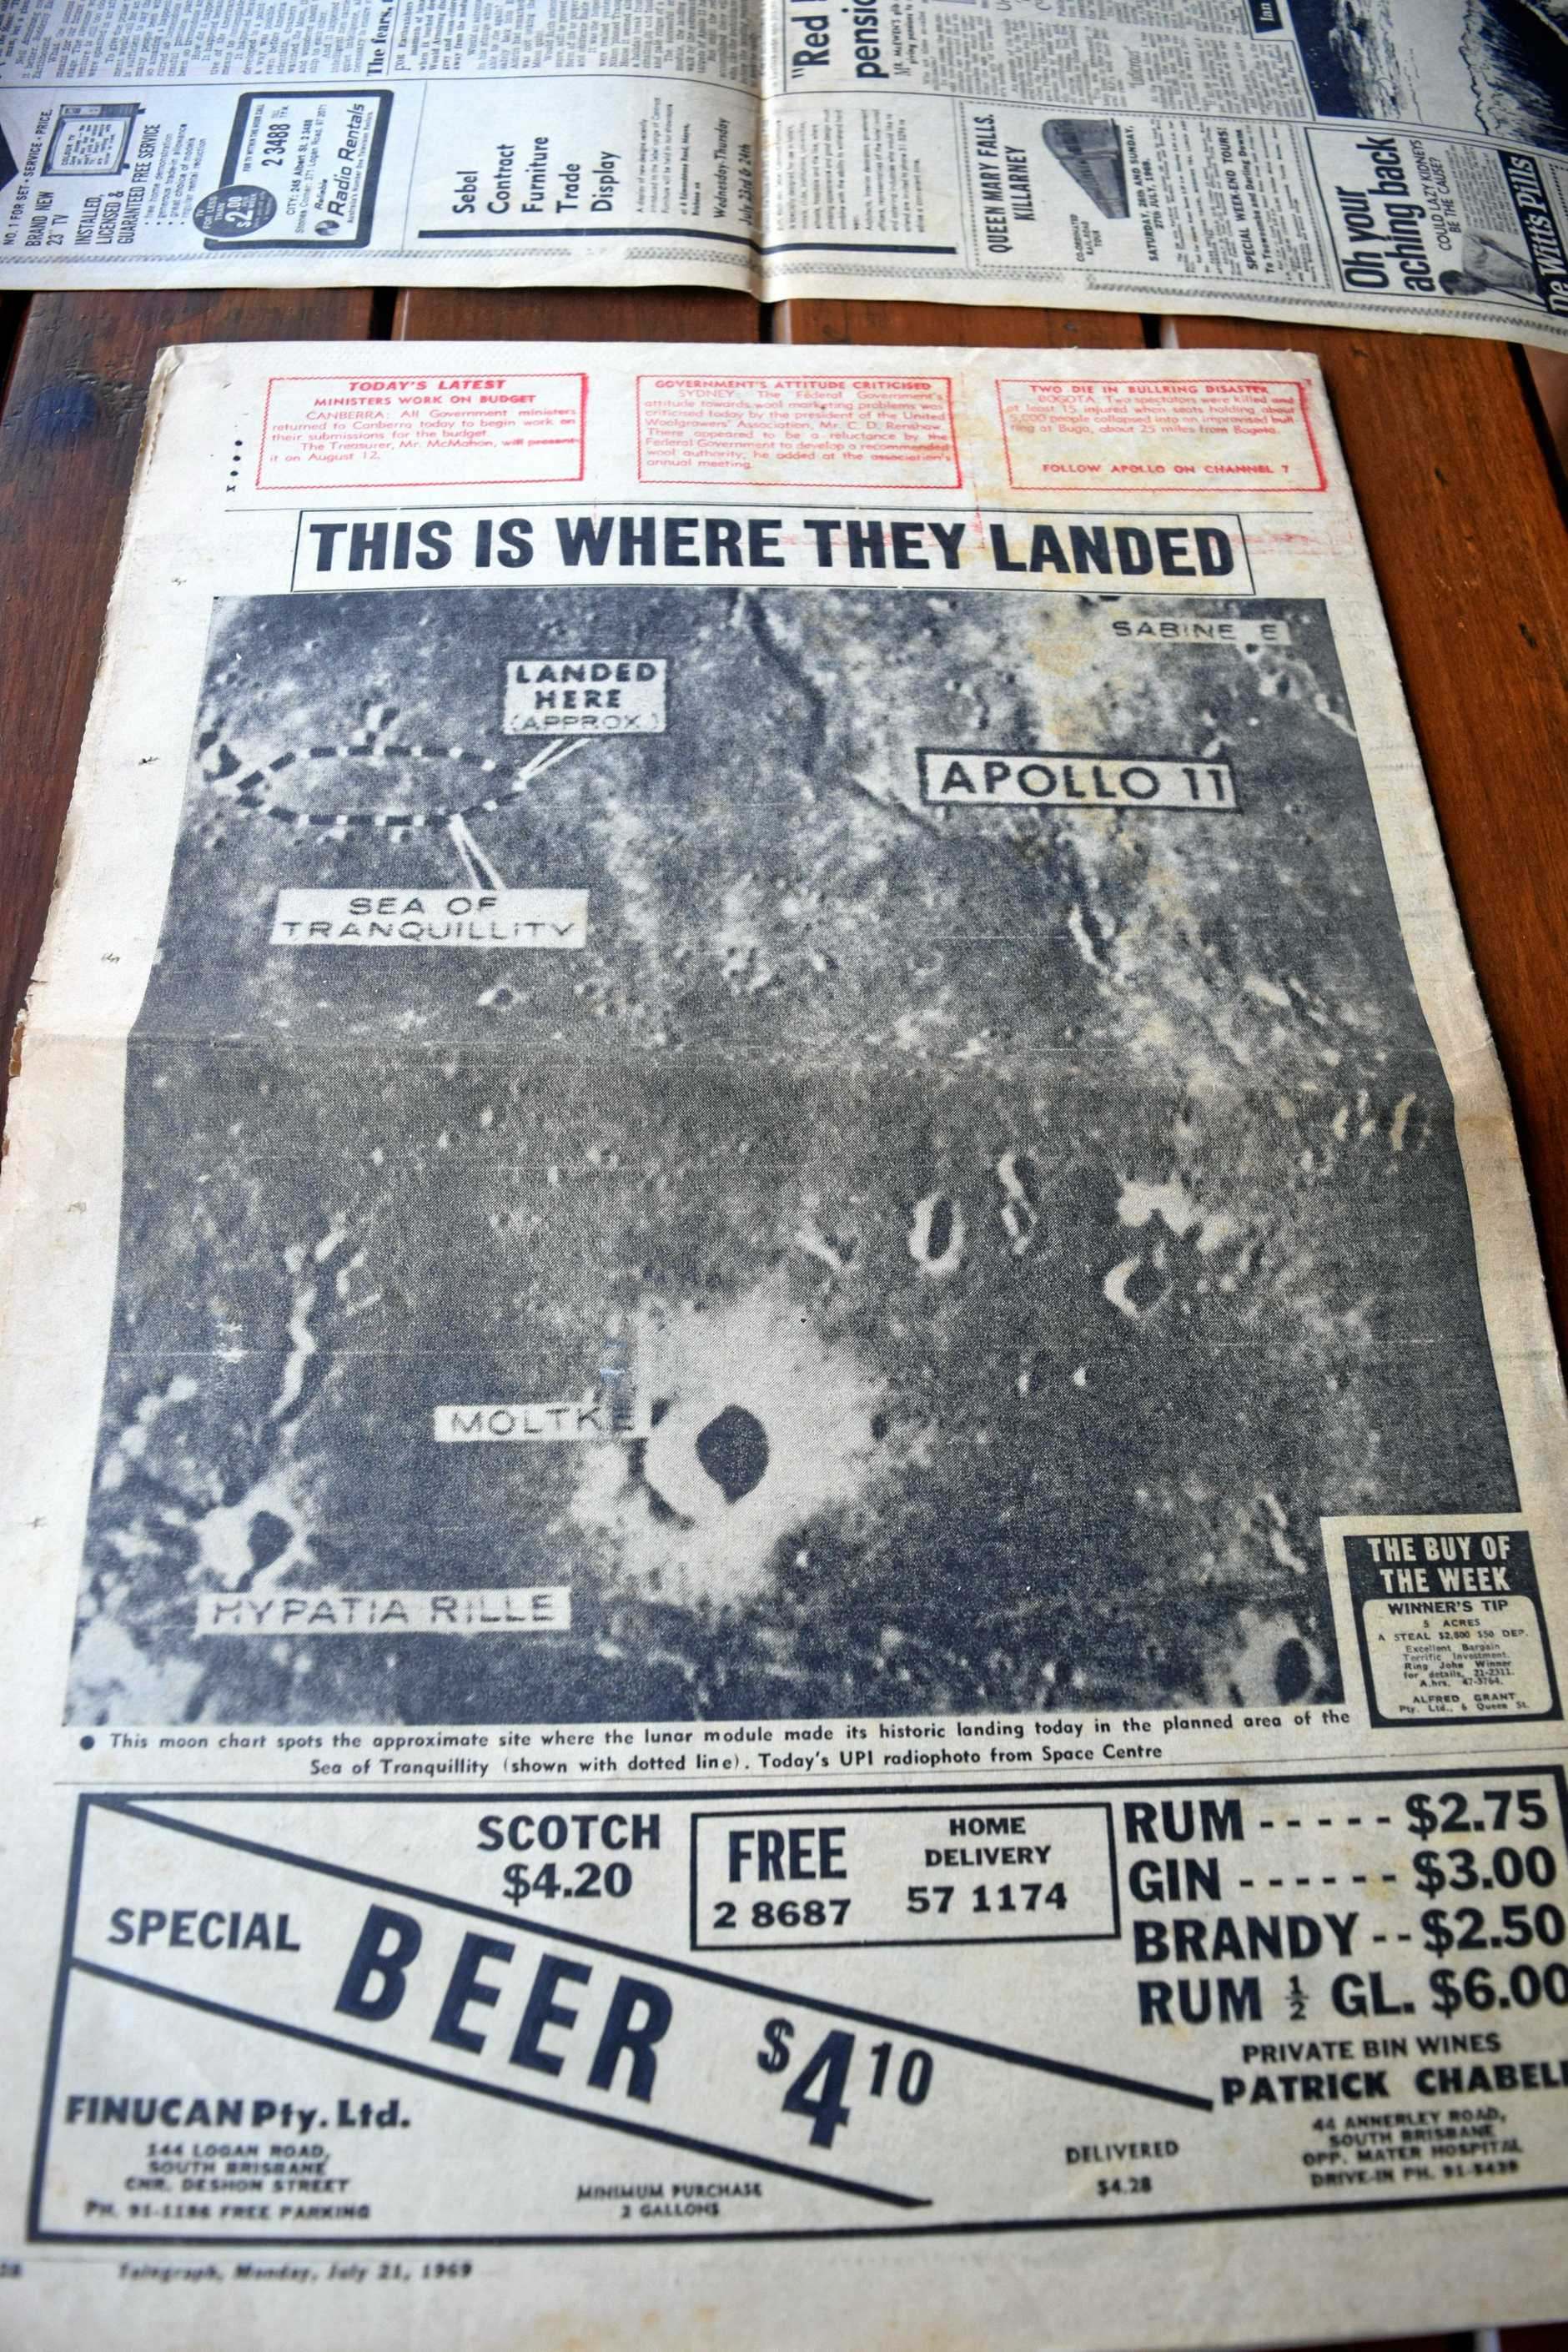 While pictures were of low quality, people snapped up copies of the paper to see the surface of the moon for the first time.